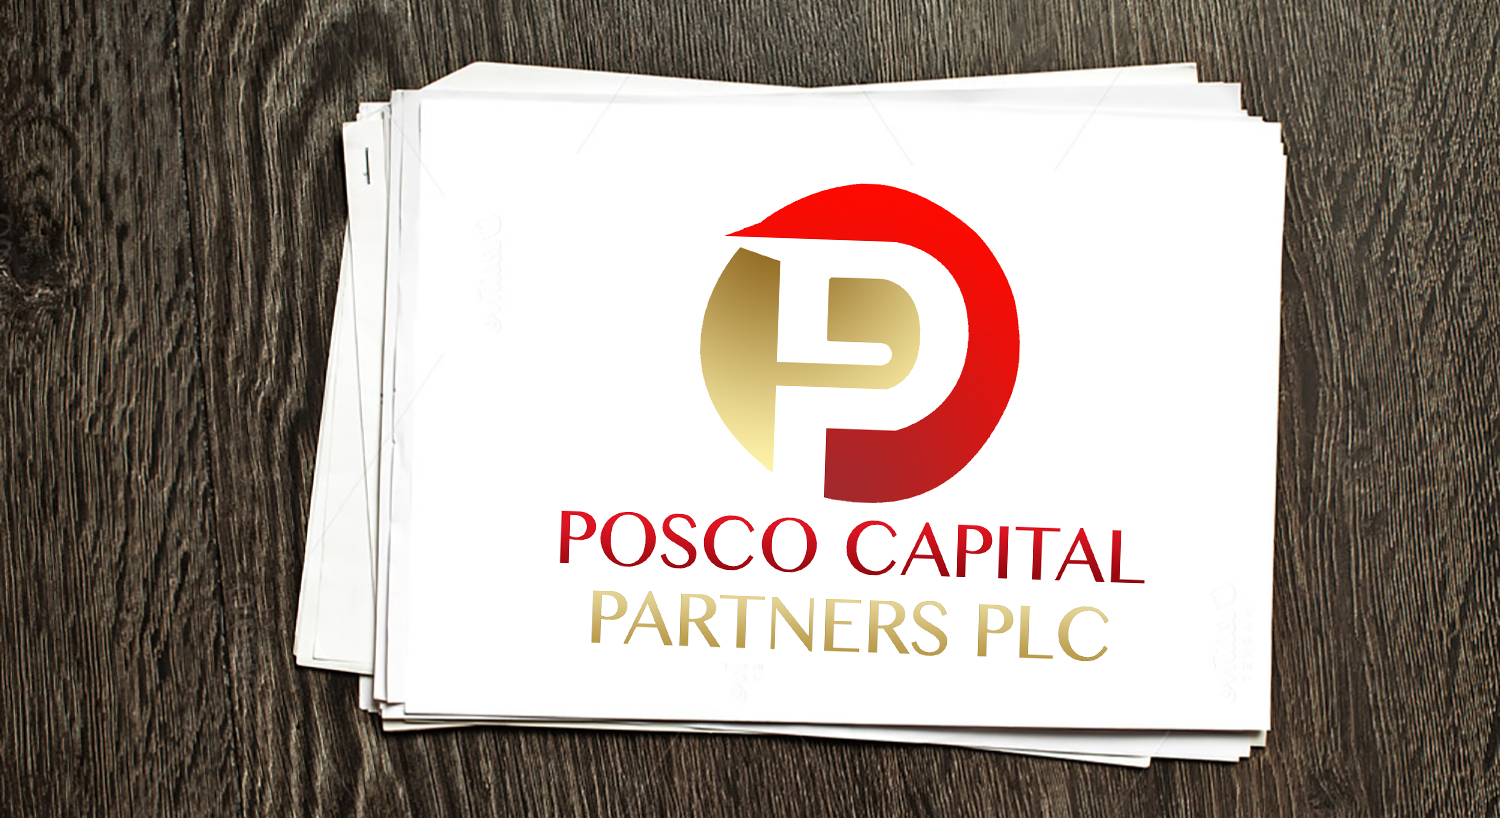 Posco Capital Partners PLC